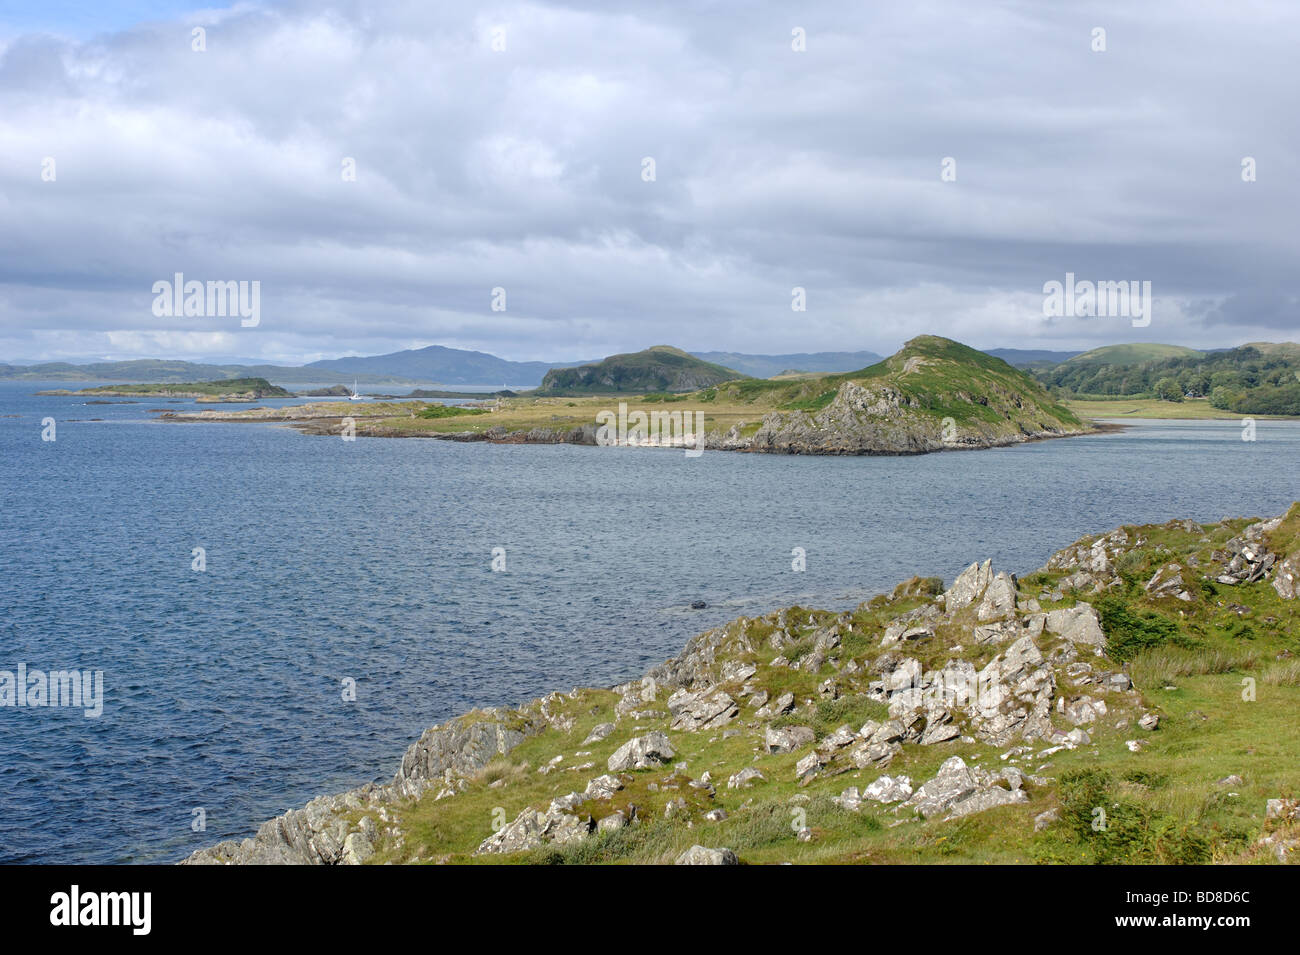 View from Craignish Point looking north towards Luing Island and the Sound of Luing on the west coast of Scotland - Stock Image